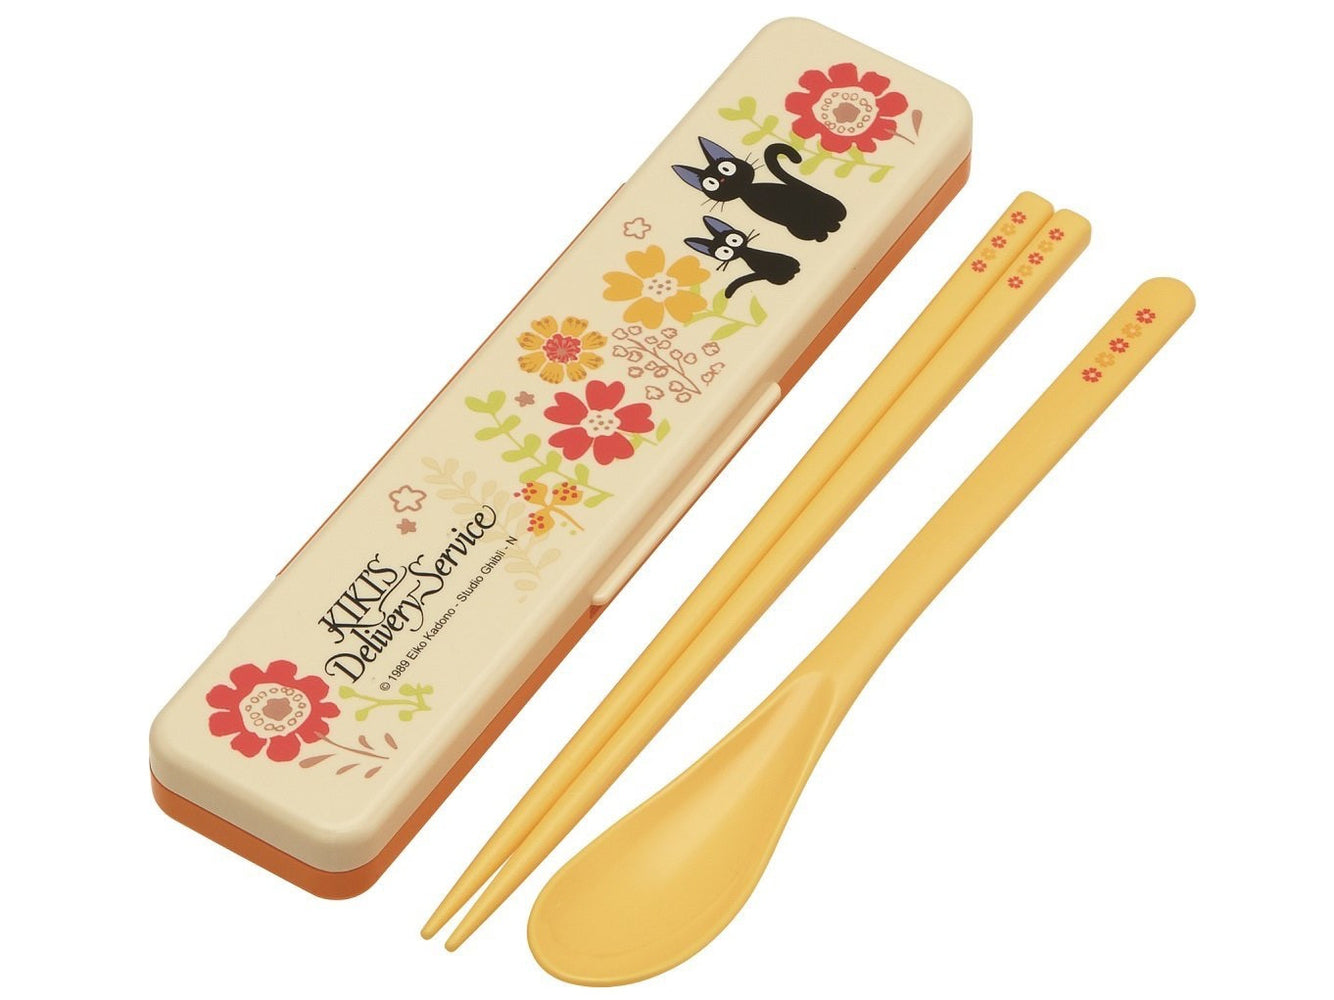 Kiki's Delivery Service Cutlery Set by Skater - Bento&con the Bento Boxes specialist from Kyoto